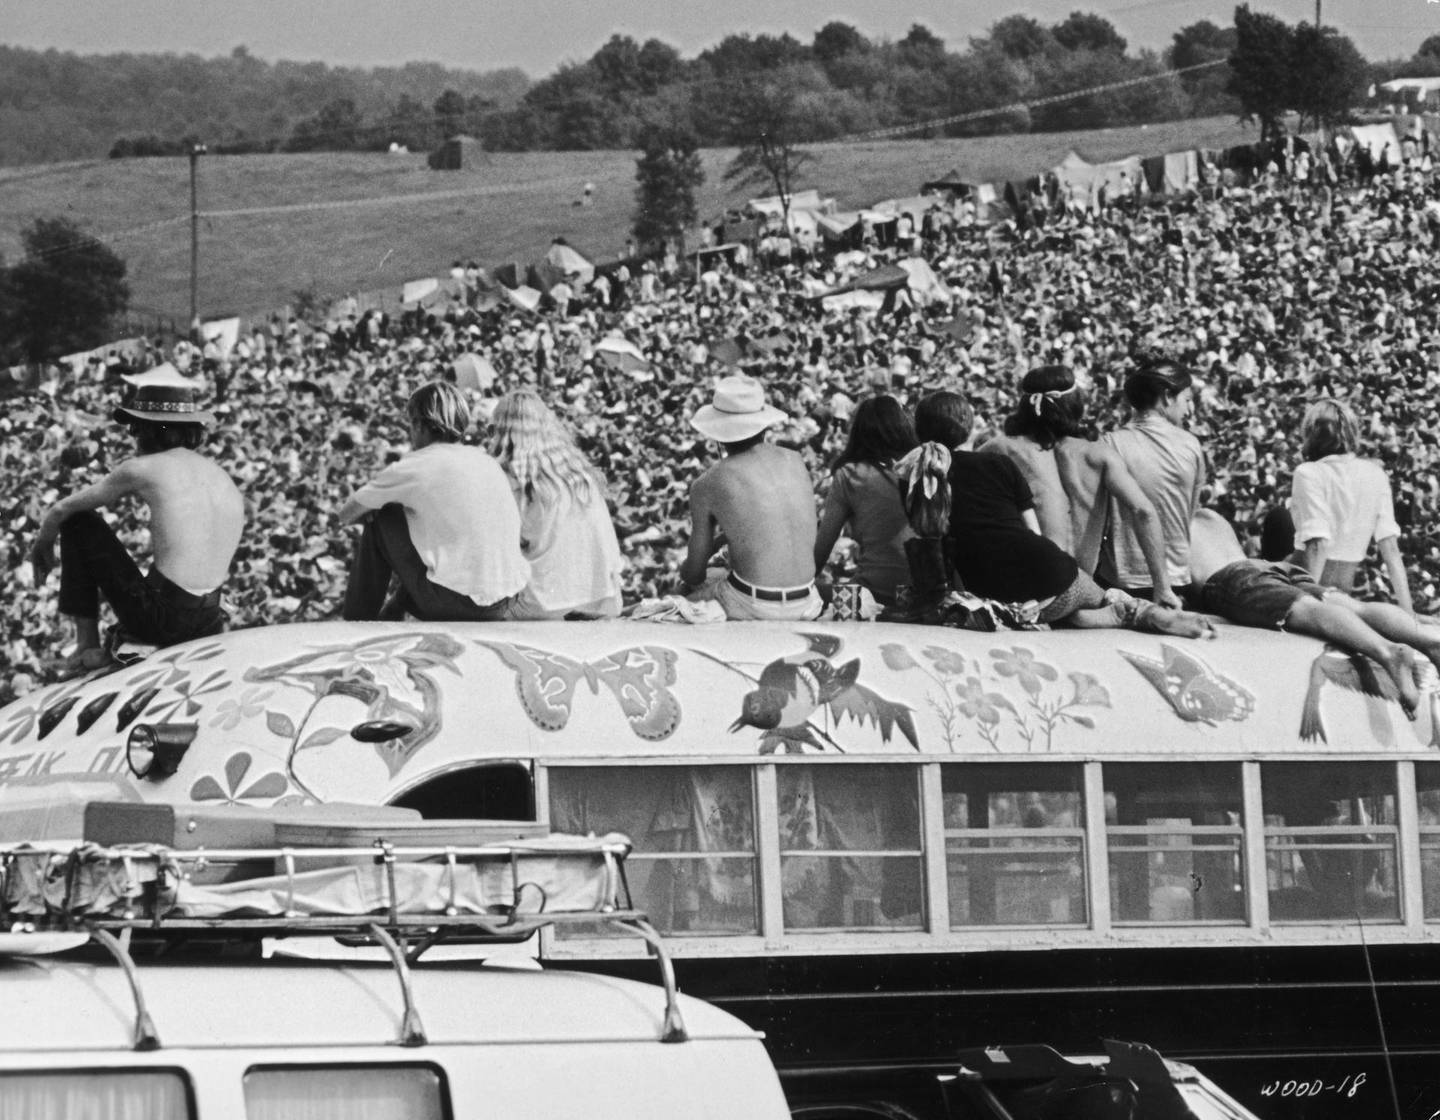 Fans sitting on top of a painted bus at the Woodstock Music Festival, Bethel, New York, 15th-17th August 1969. (Photo by Archive Photos/Getty Images)